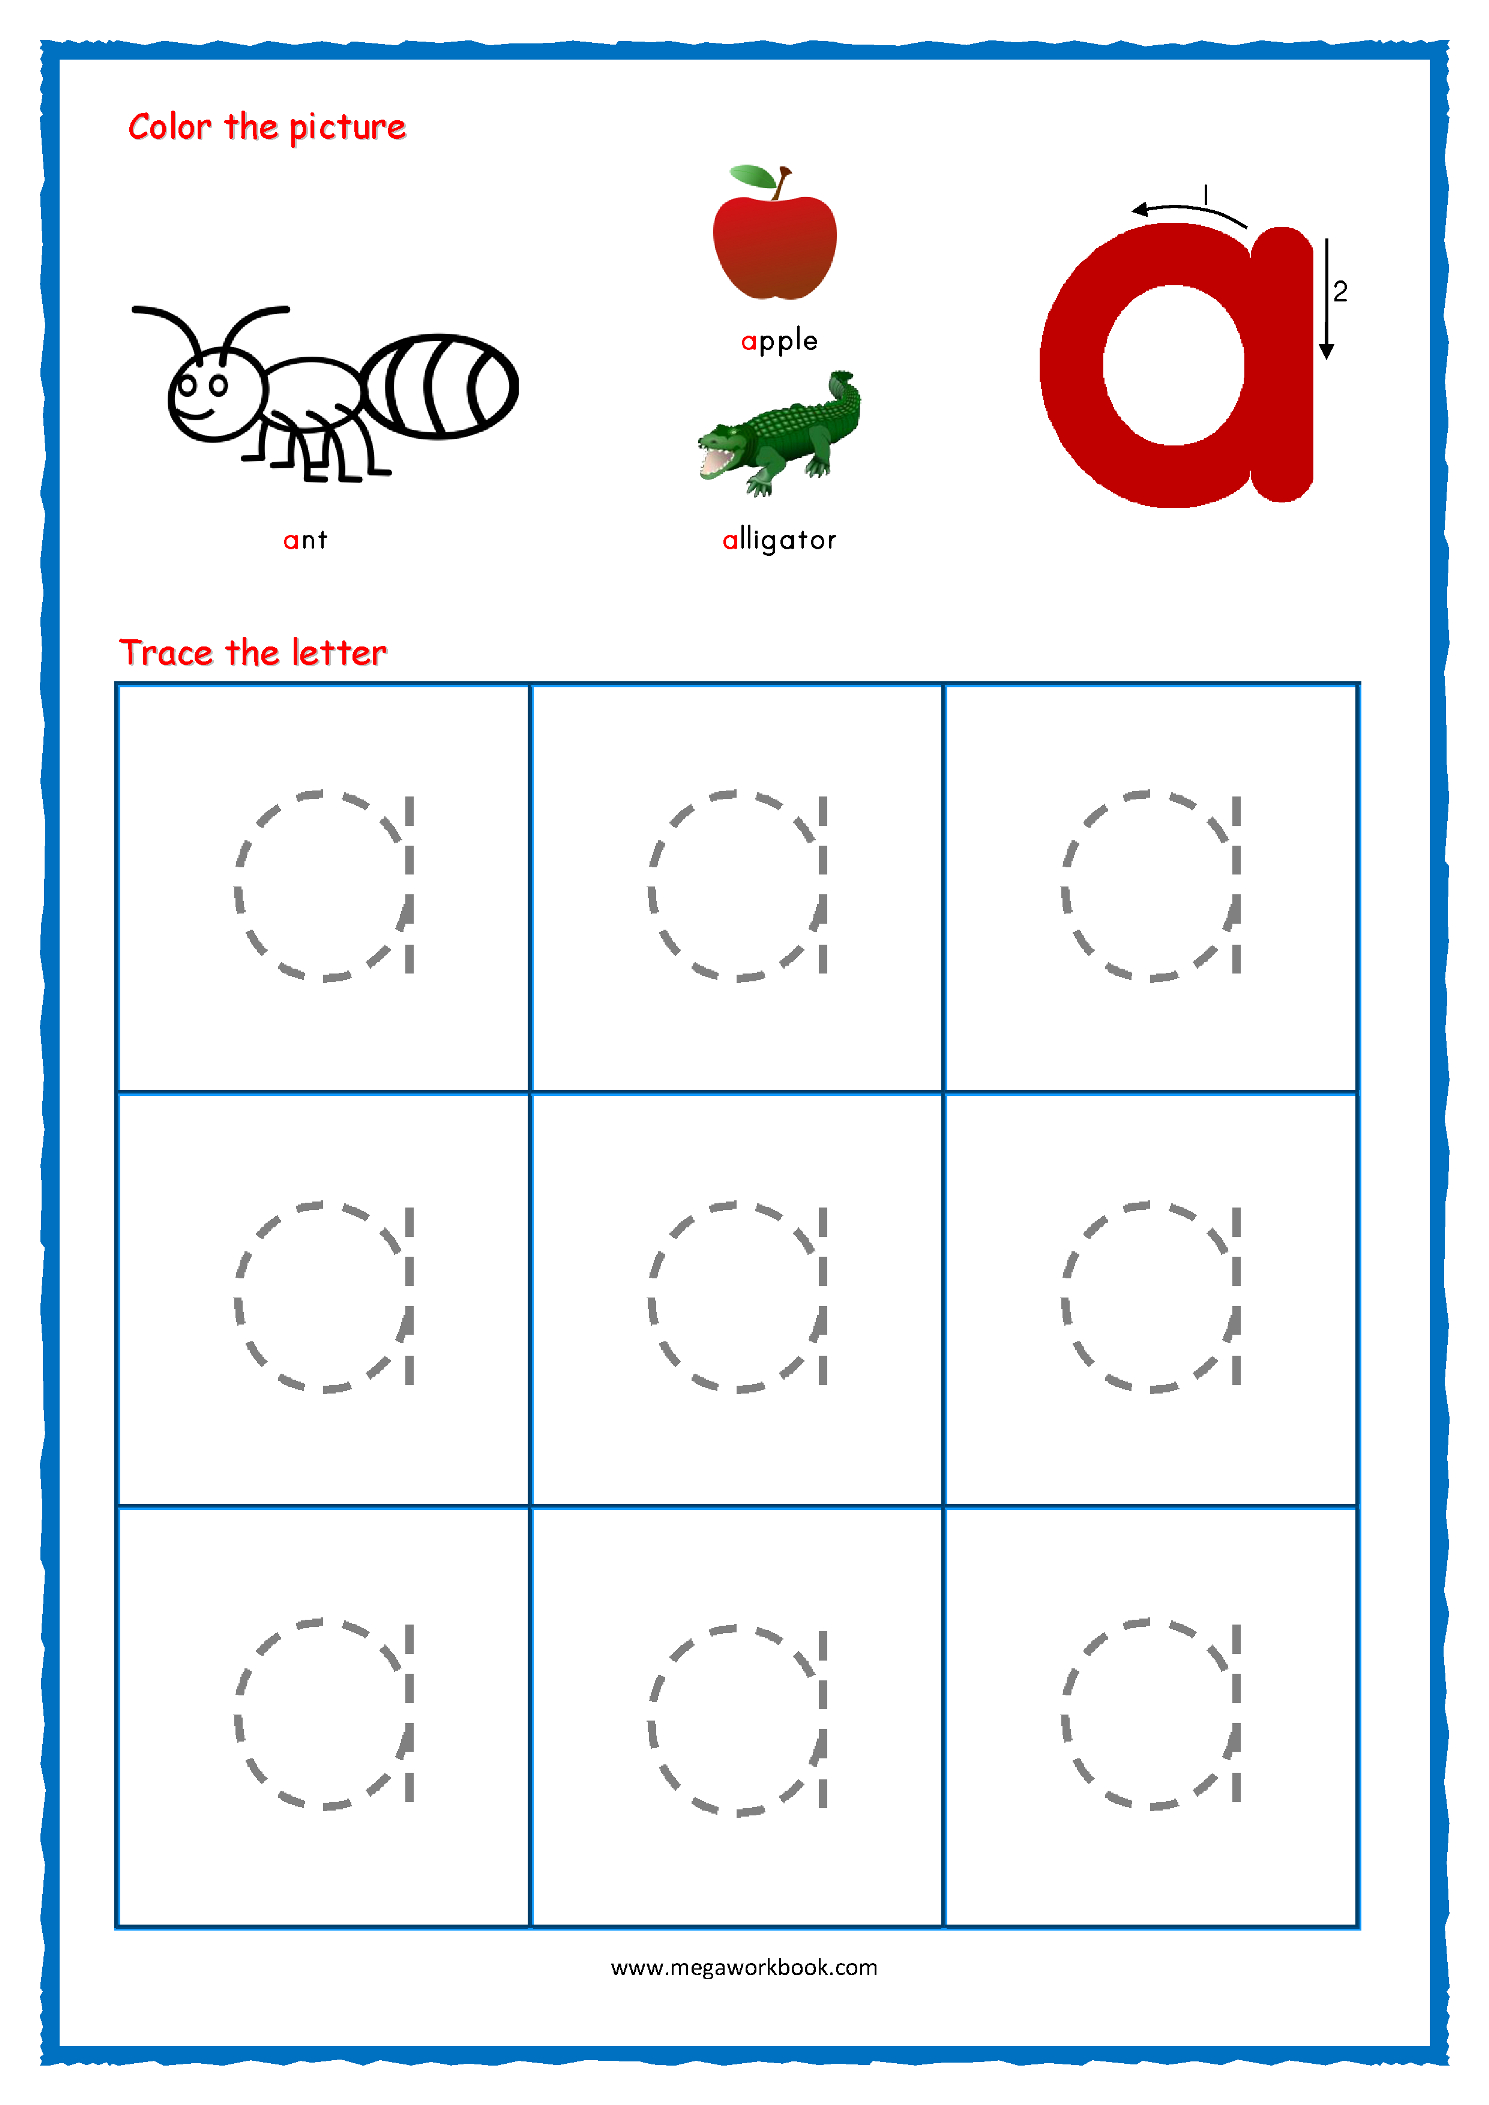 Alphabet Tracing - Small Letters - Alphabet Tracing throughout Tracing Small Letters